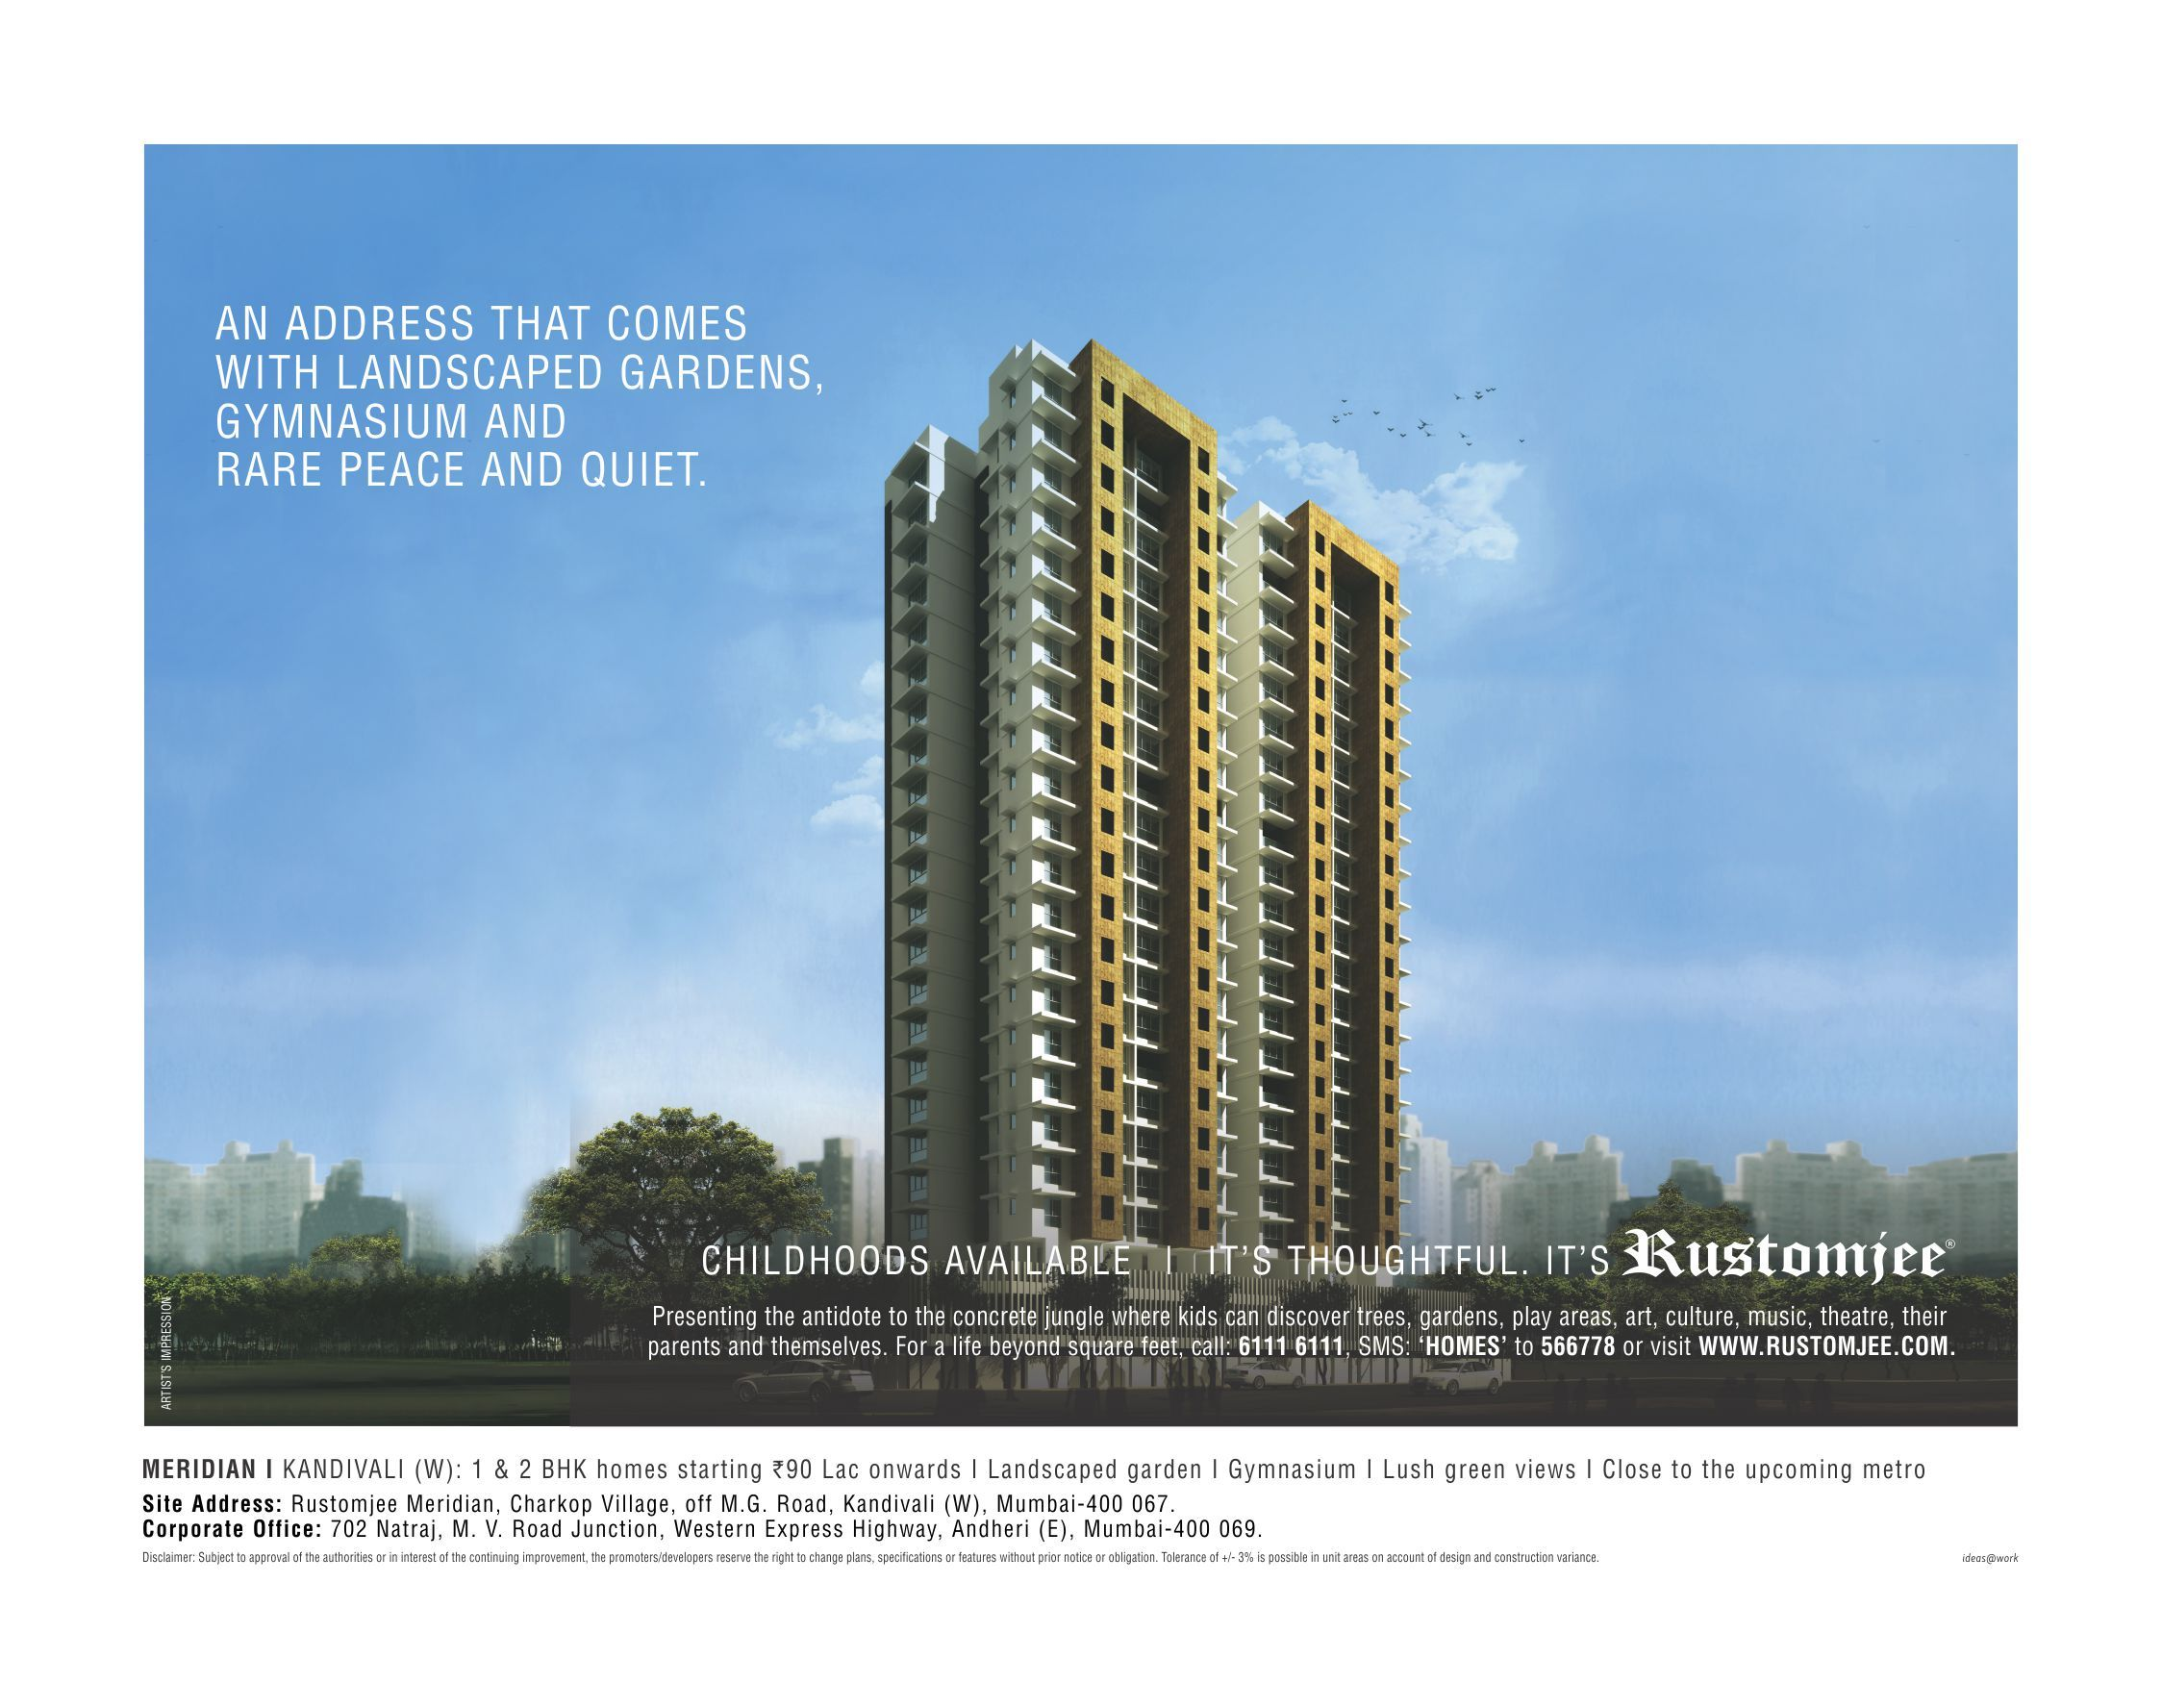 a71c8ba14b39a8a3f5f4b12cff628df1 presenting a life beyond square feet, at rustomjee meridian  at aneh.co